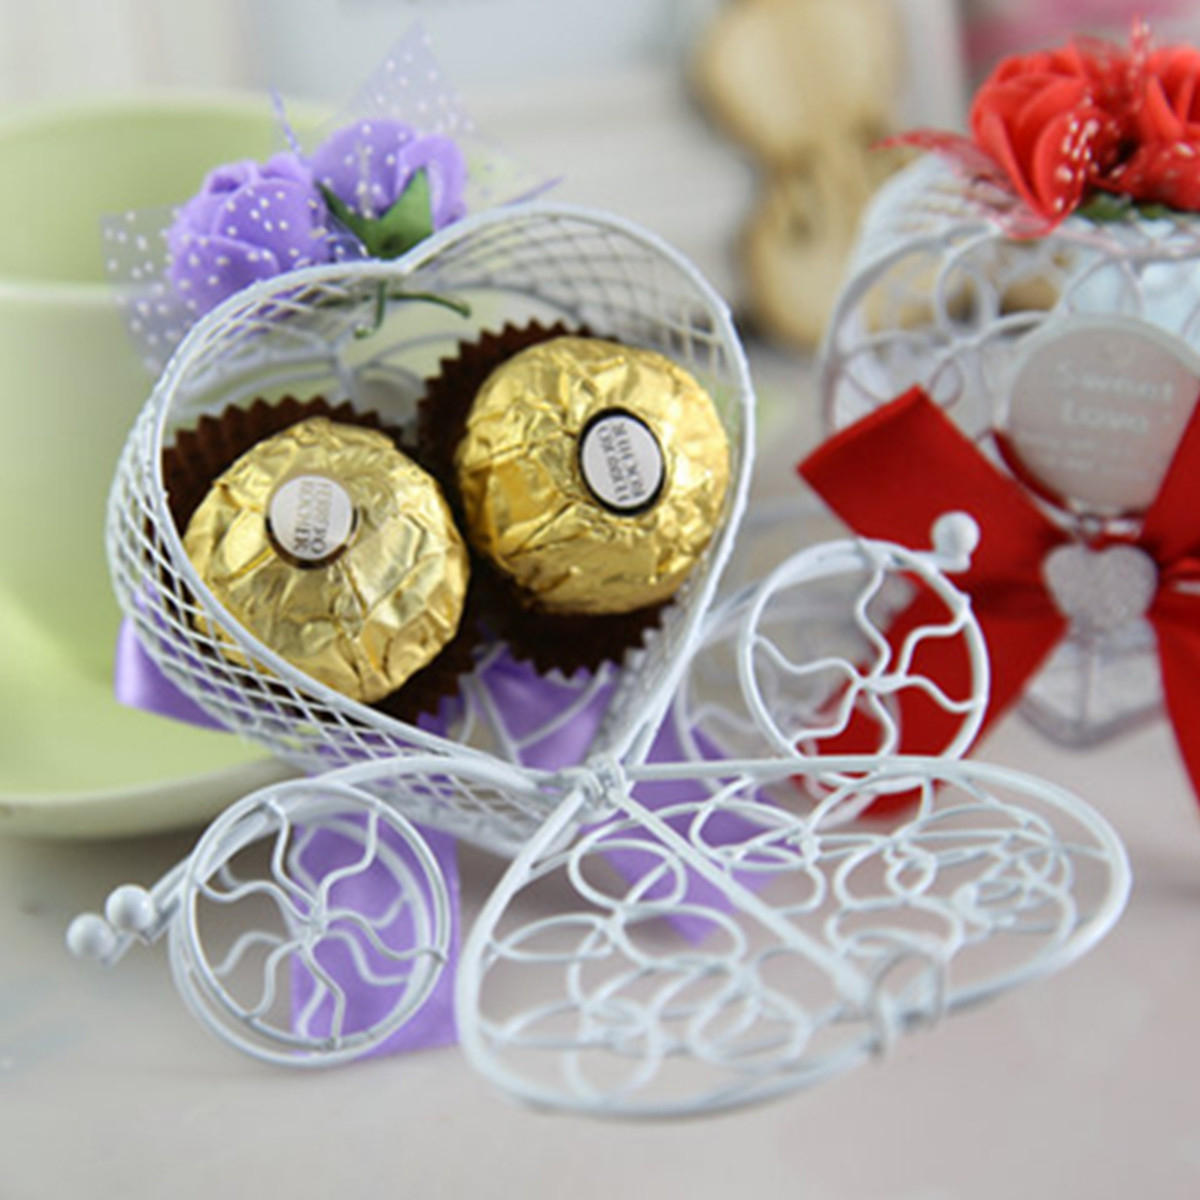 10Pcs/Set Carriage Chocolate Candy Box Birthday Wedding Party Favor Box Decorations